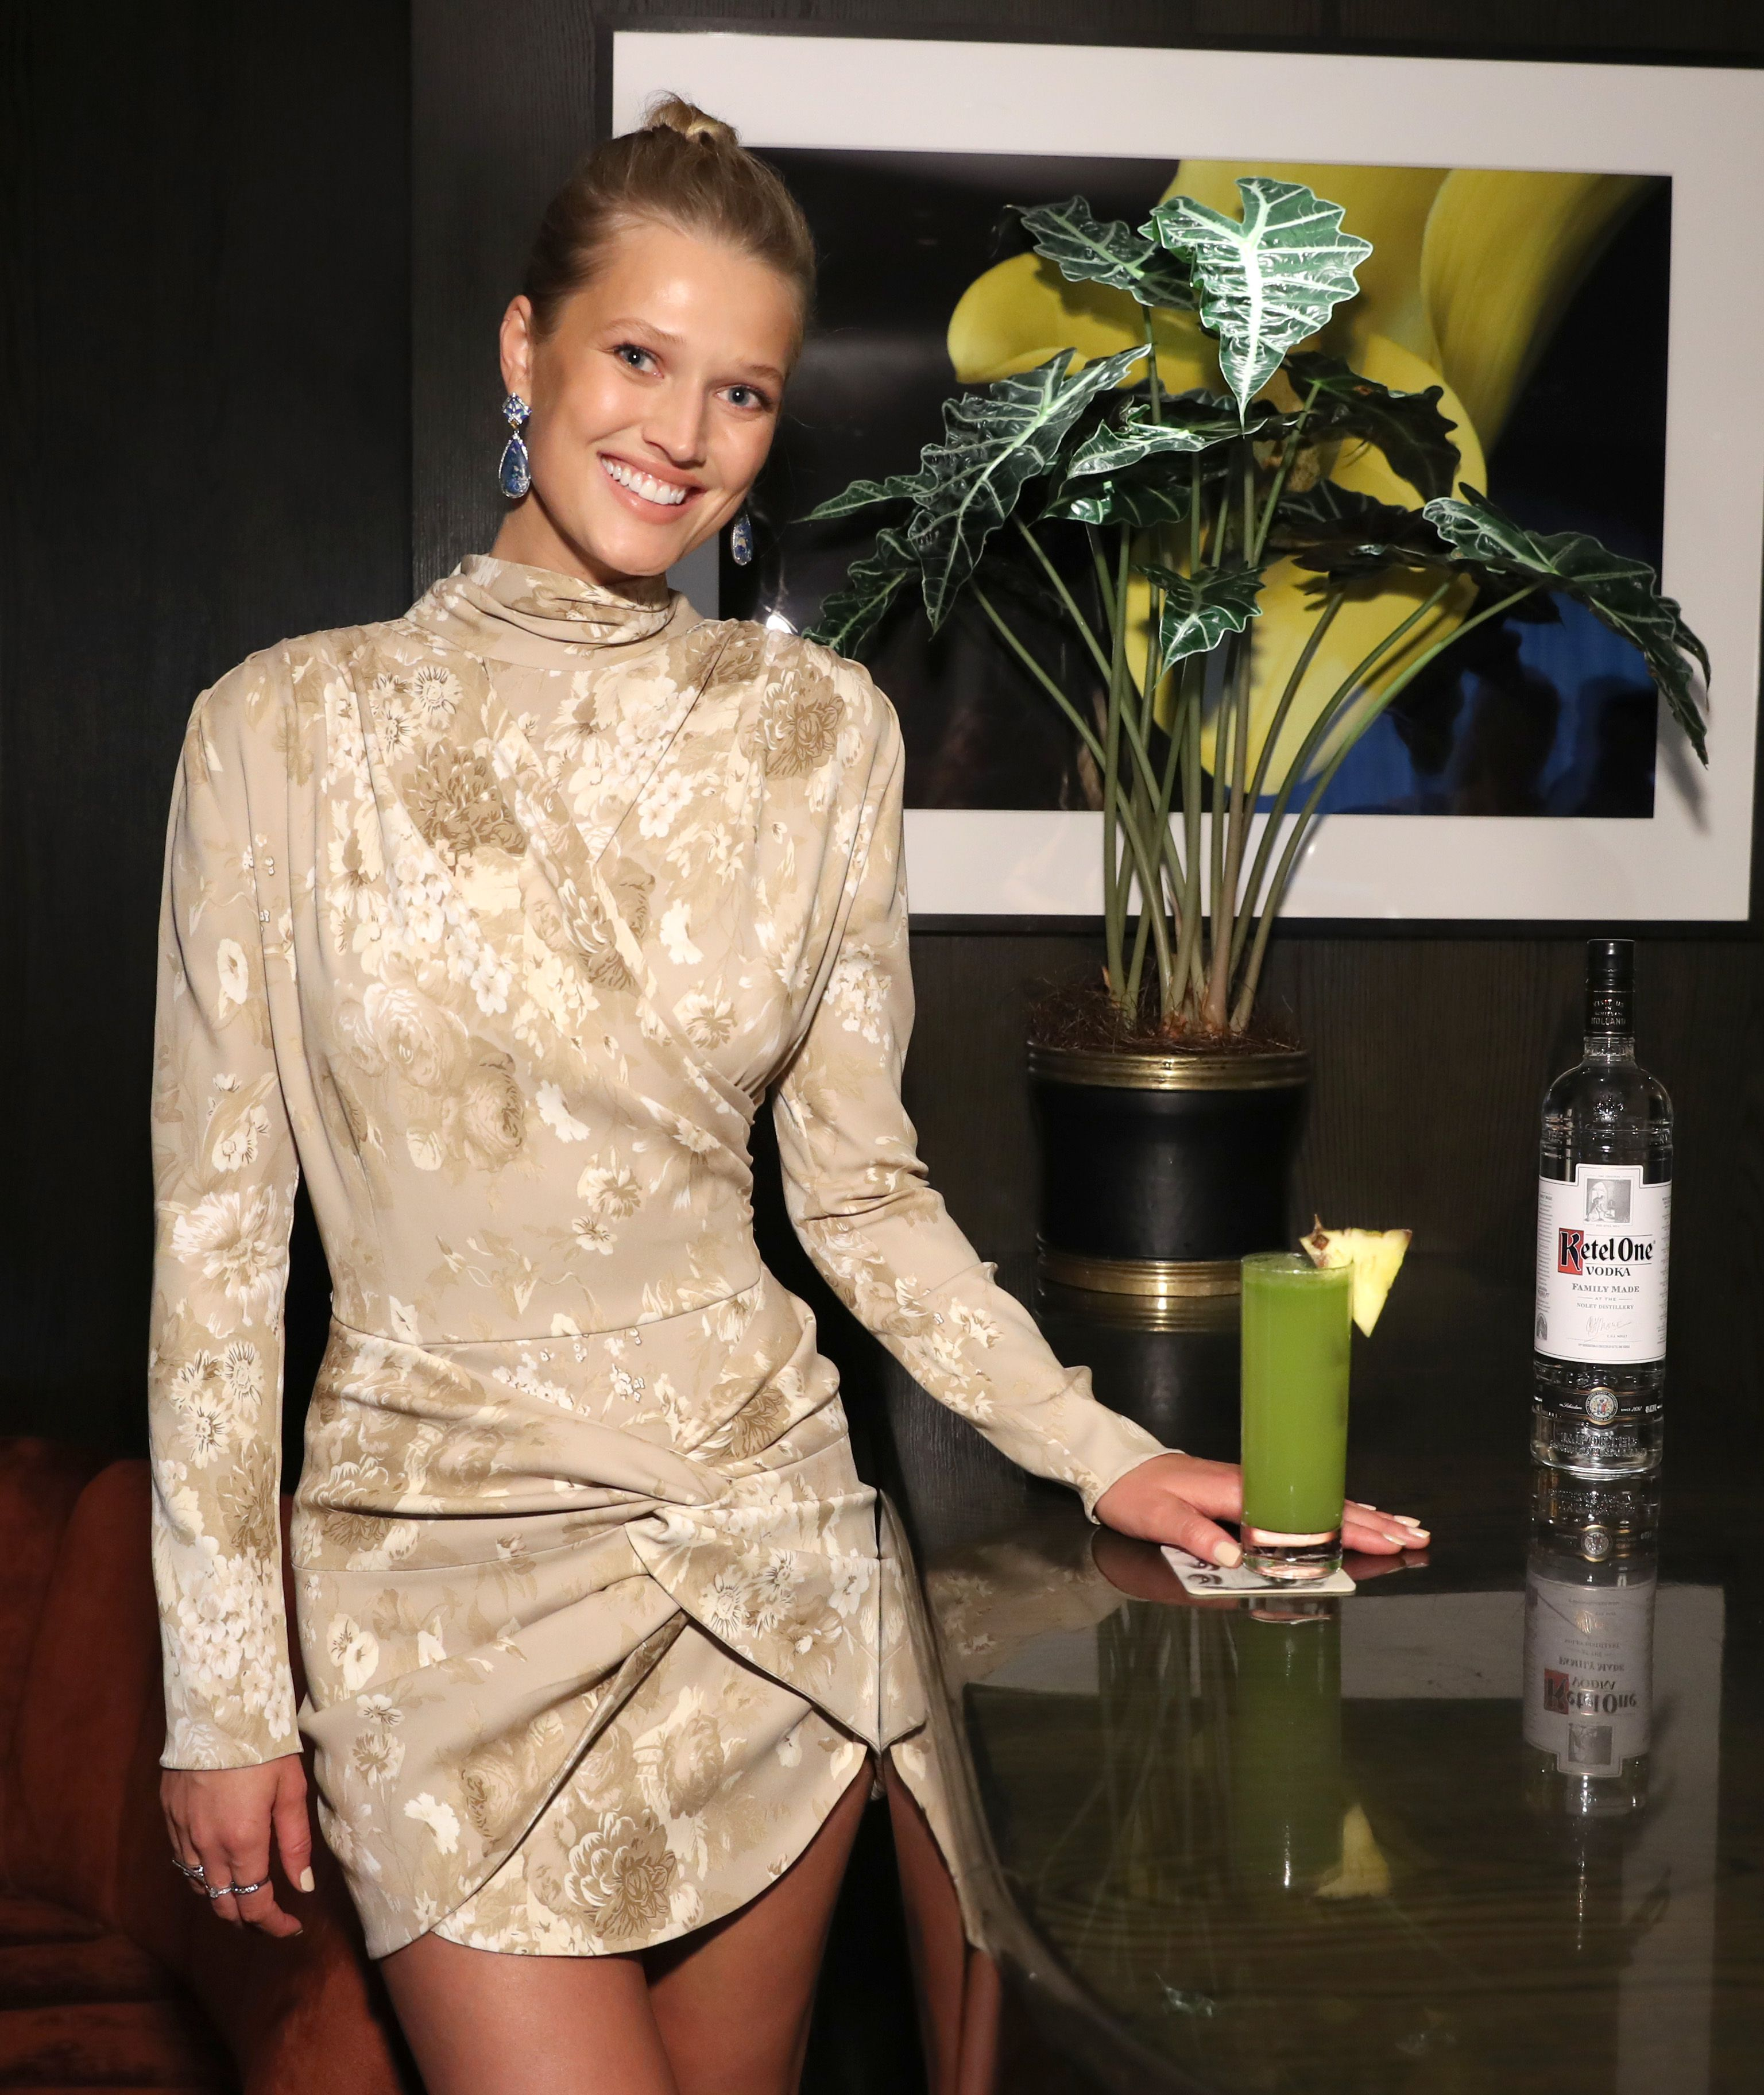 Thanks to Toni Garrn, Gisele Bündchen and Gigi Hadid are Opening Up their Closets for Charity